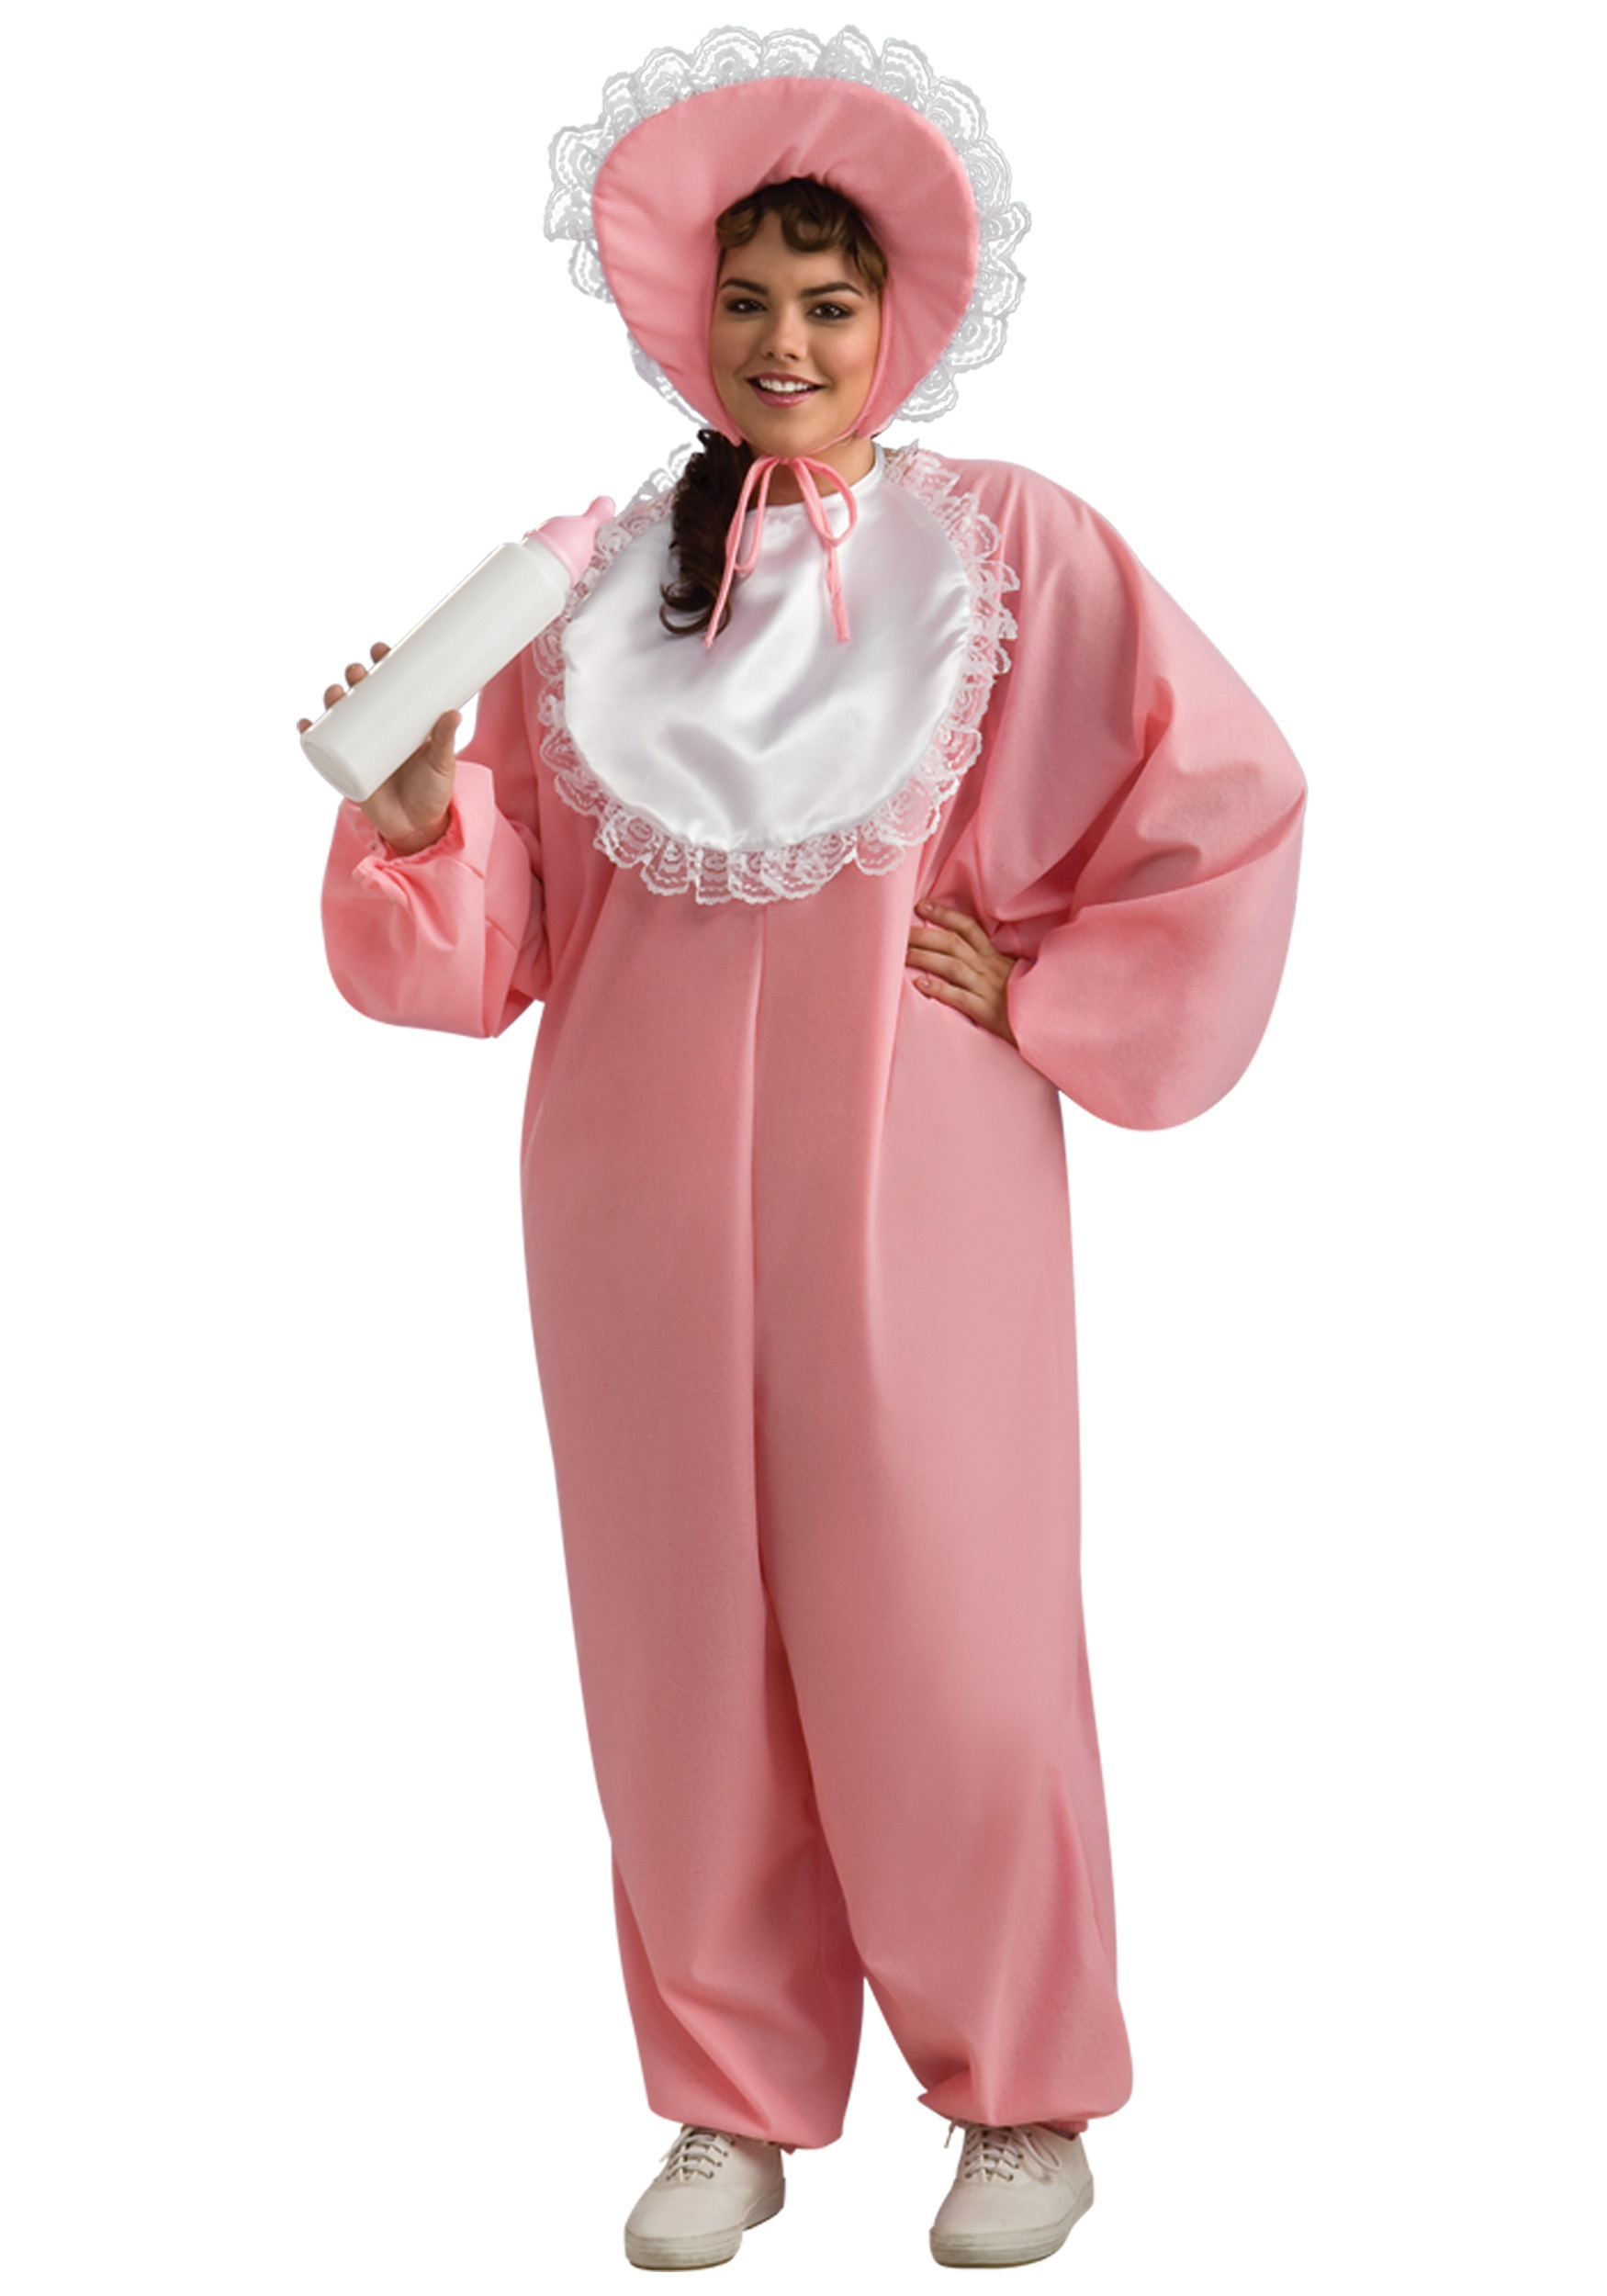 Plus Size Big Baby Girl Costume  sc 1 st  Halloween Costume & Plus Size Big Baby Girl Costume - Womenu0027s Baby Jumpsuits